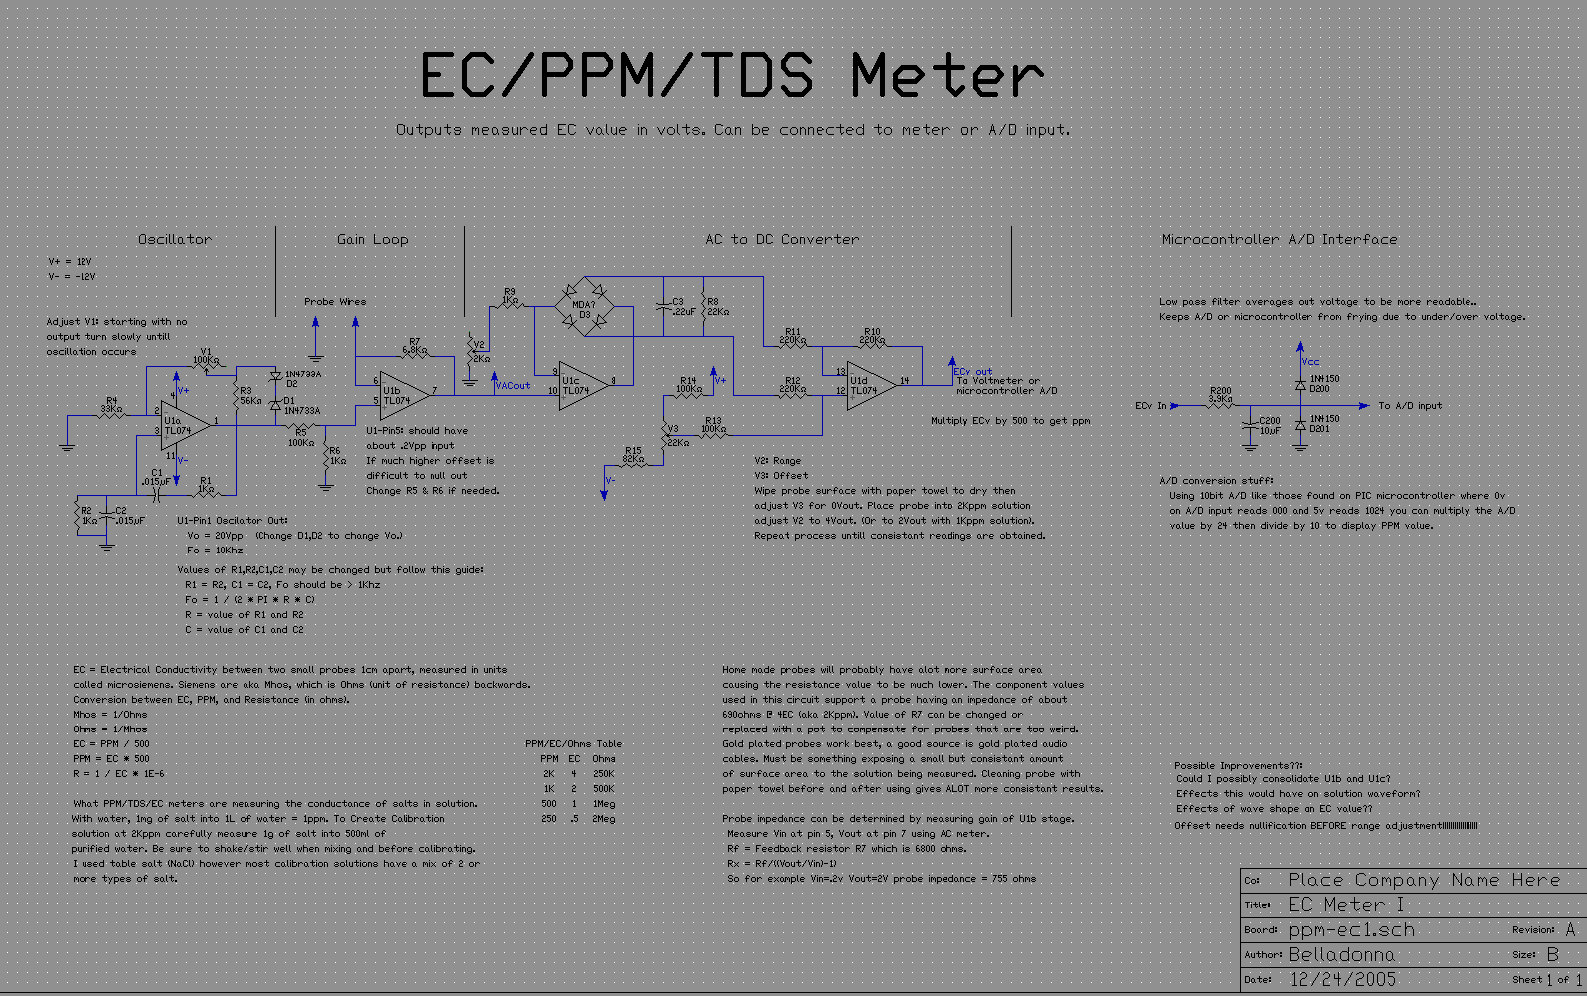 Ec Tds Ppm Meter Kawasaki Klr650 Engine Diagram Click Here For The Full More Readable Schematic And Notes